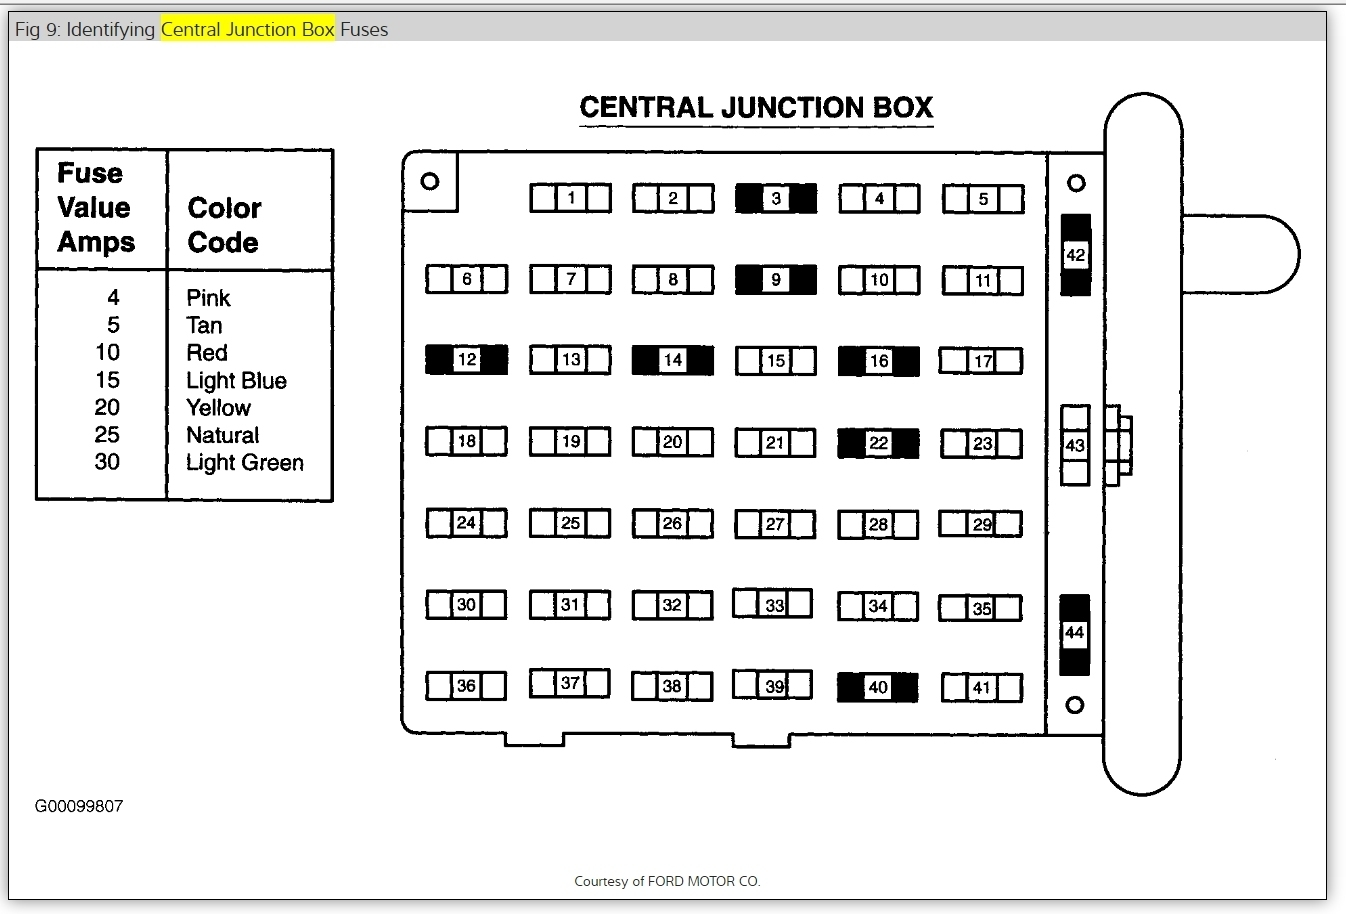 original 1999 ford mustang fuse box layout electrical problem 1999 ford 2004 mustang fuse box layout at edmiracle.co